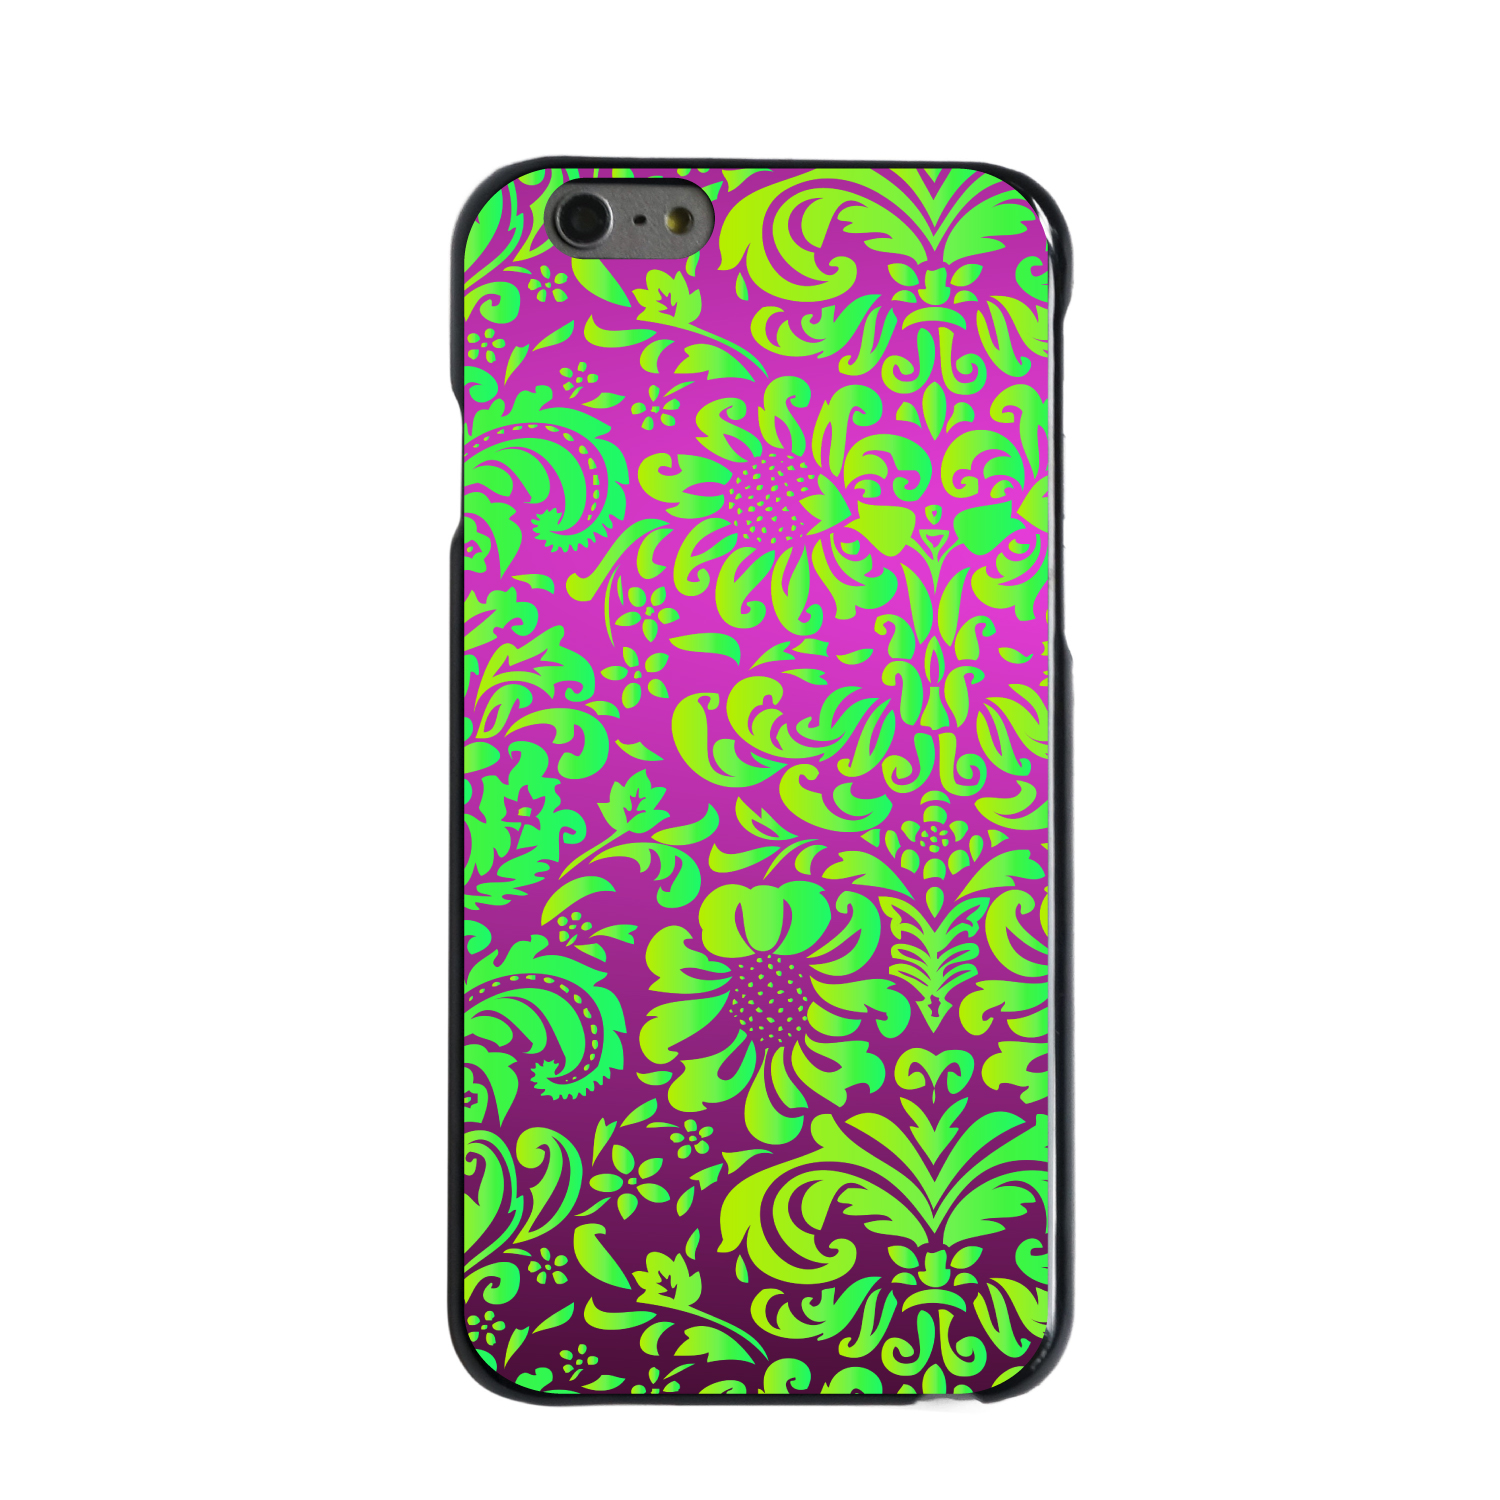 "CUSTOM Black Hard Plastic Snap-On Case for Apple iPhone 6 PLUS / 6S PLUS (5.5"" Screen) - Purple Green Floral Pattern"